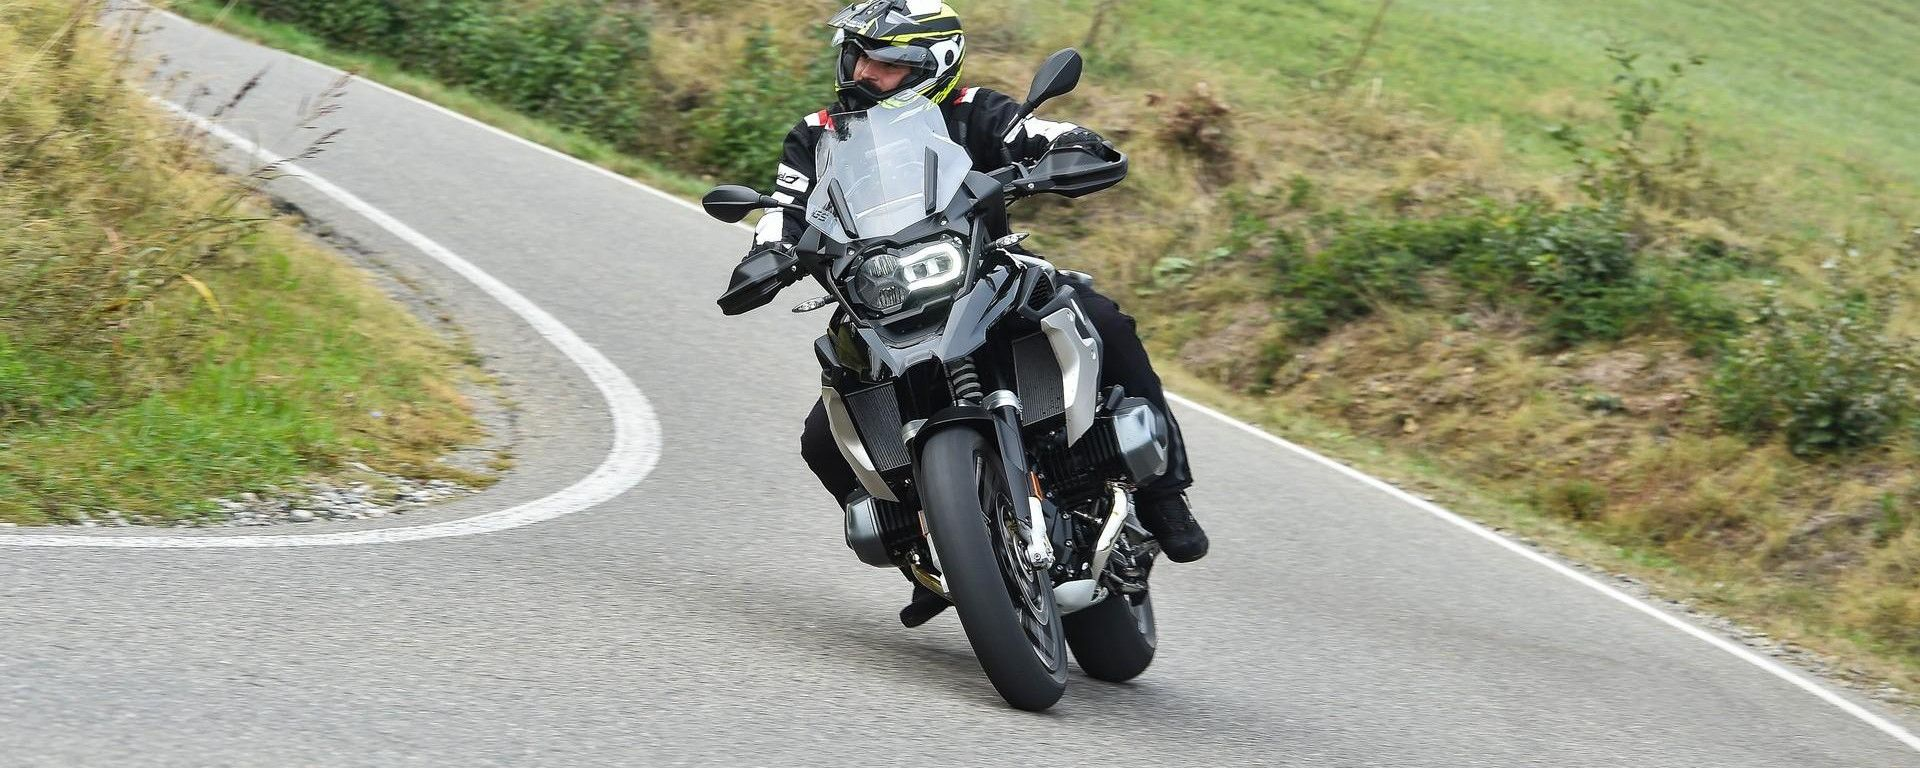 La BMW R 1250 GS è già in testa alla classifica